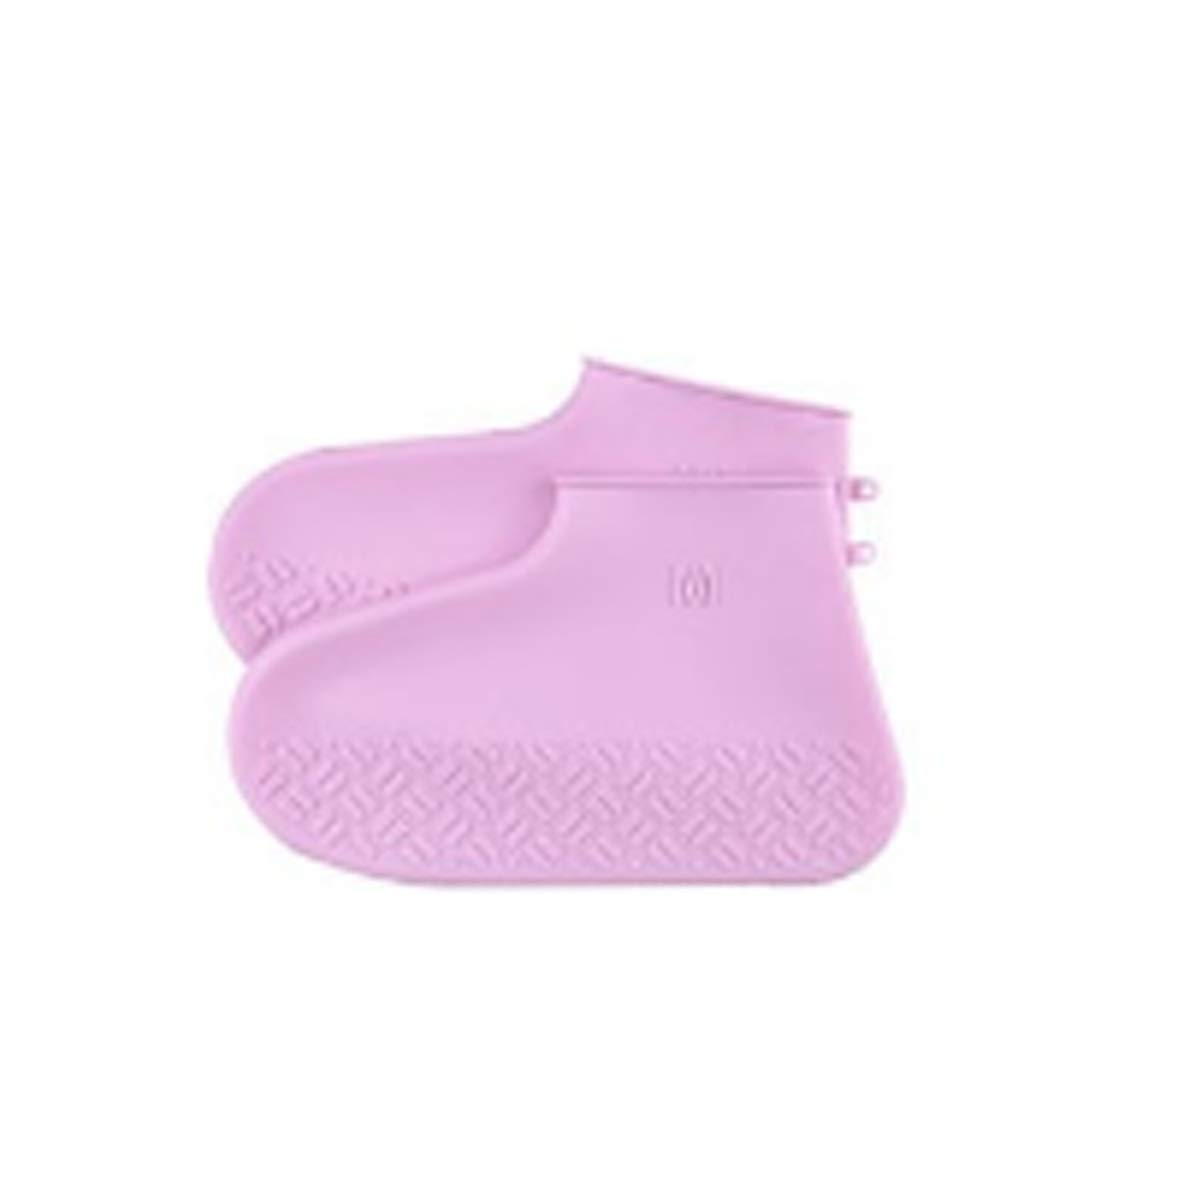 KAIYITONG Rainproof Shoe Cover, Waterproof And Rainproof Shoes, Silicone Shoe Covers, Non-slip Wear-resistant Bottom, Adult Rainy Days, Men And Women, Silicone, Rain, Snow, Anti-mud, Pink S, M, L, mul by KAIYITONG